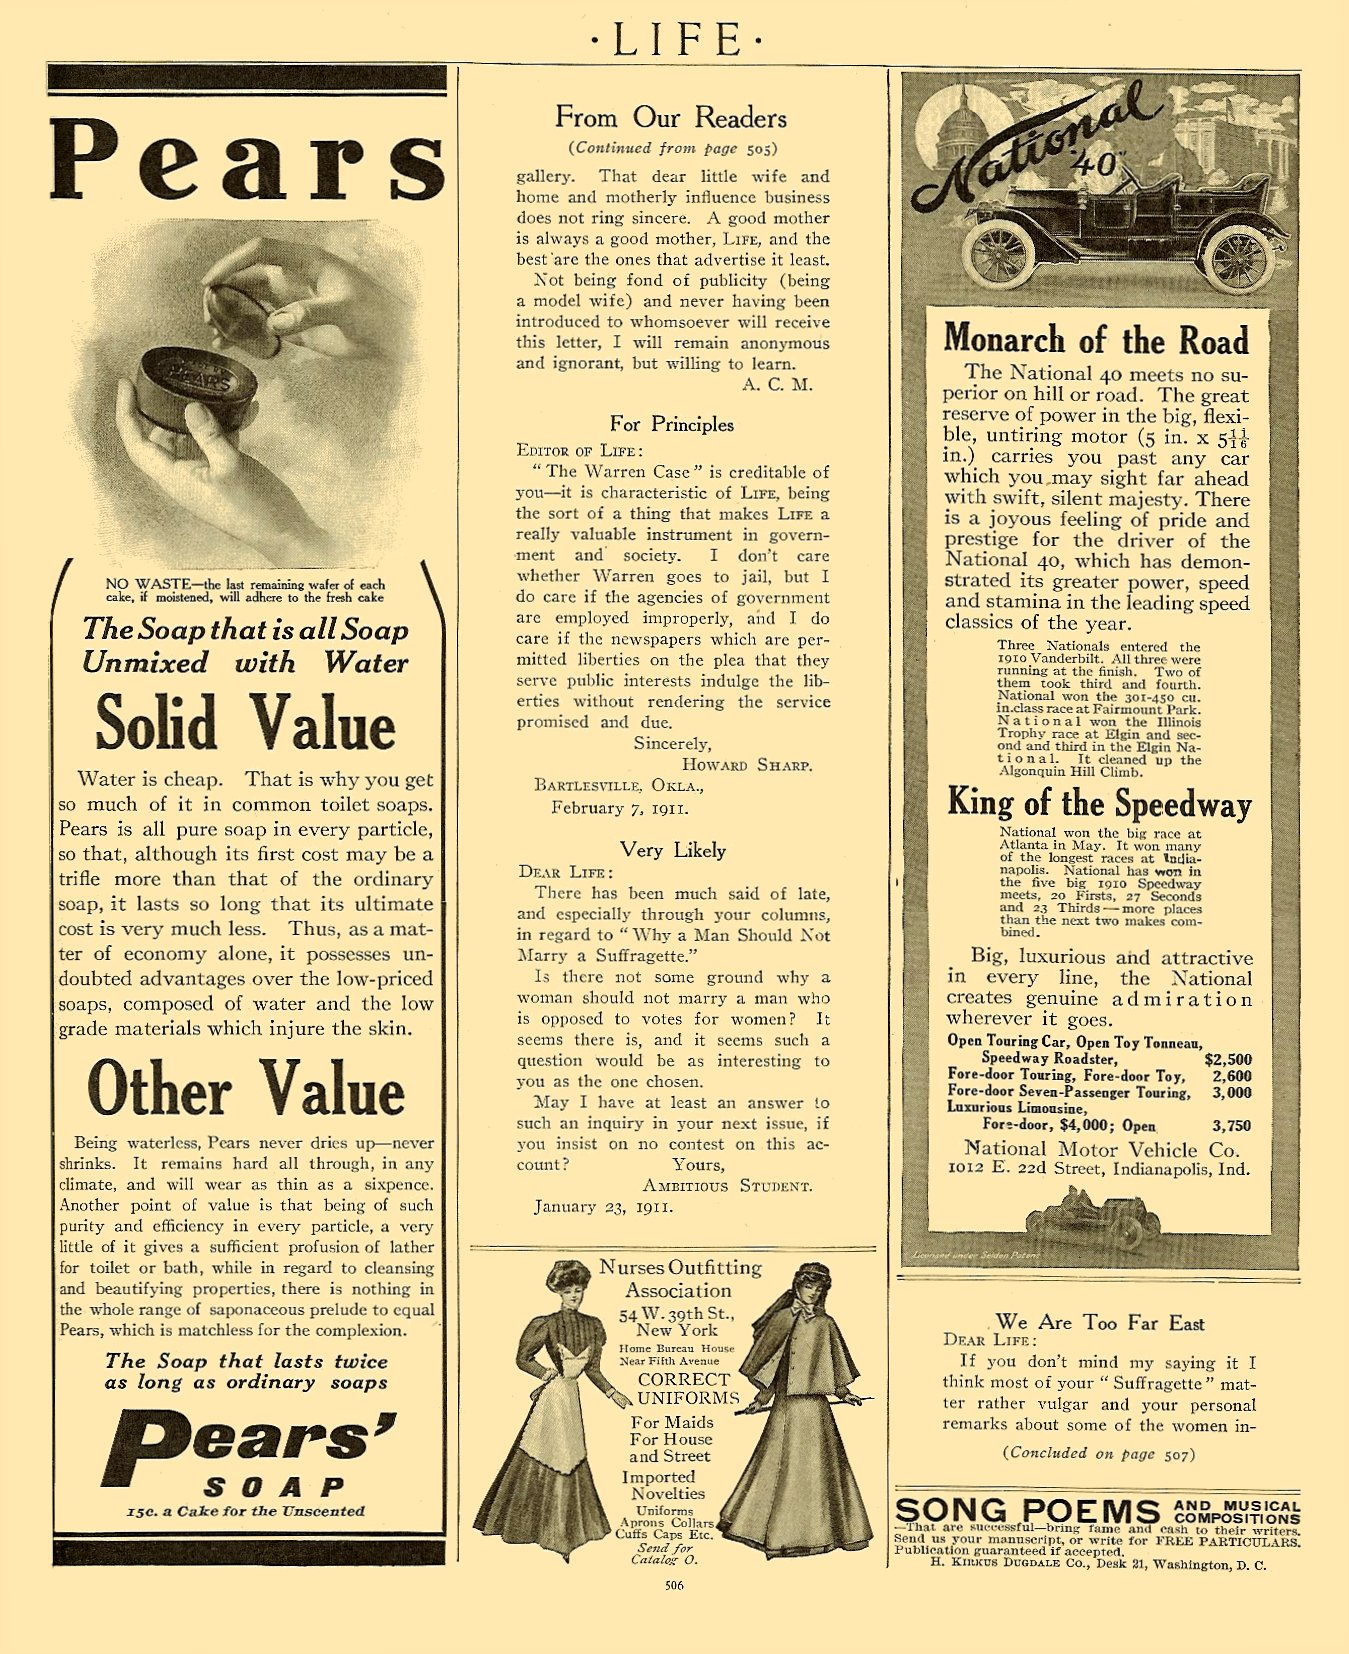 """1911 3 9 NATIONAL National """"40"""" """"Monarch of the Road"""" LIFE magazine March 9, 1911 9″x11″ page 506"""